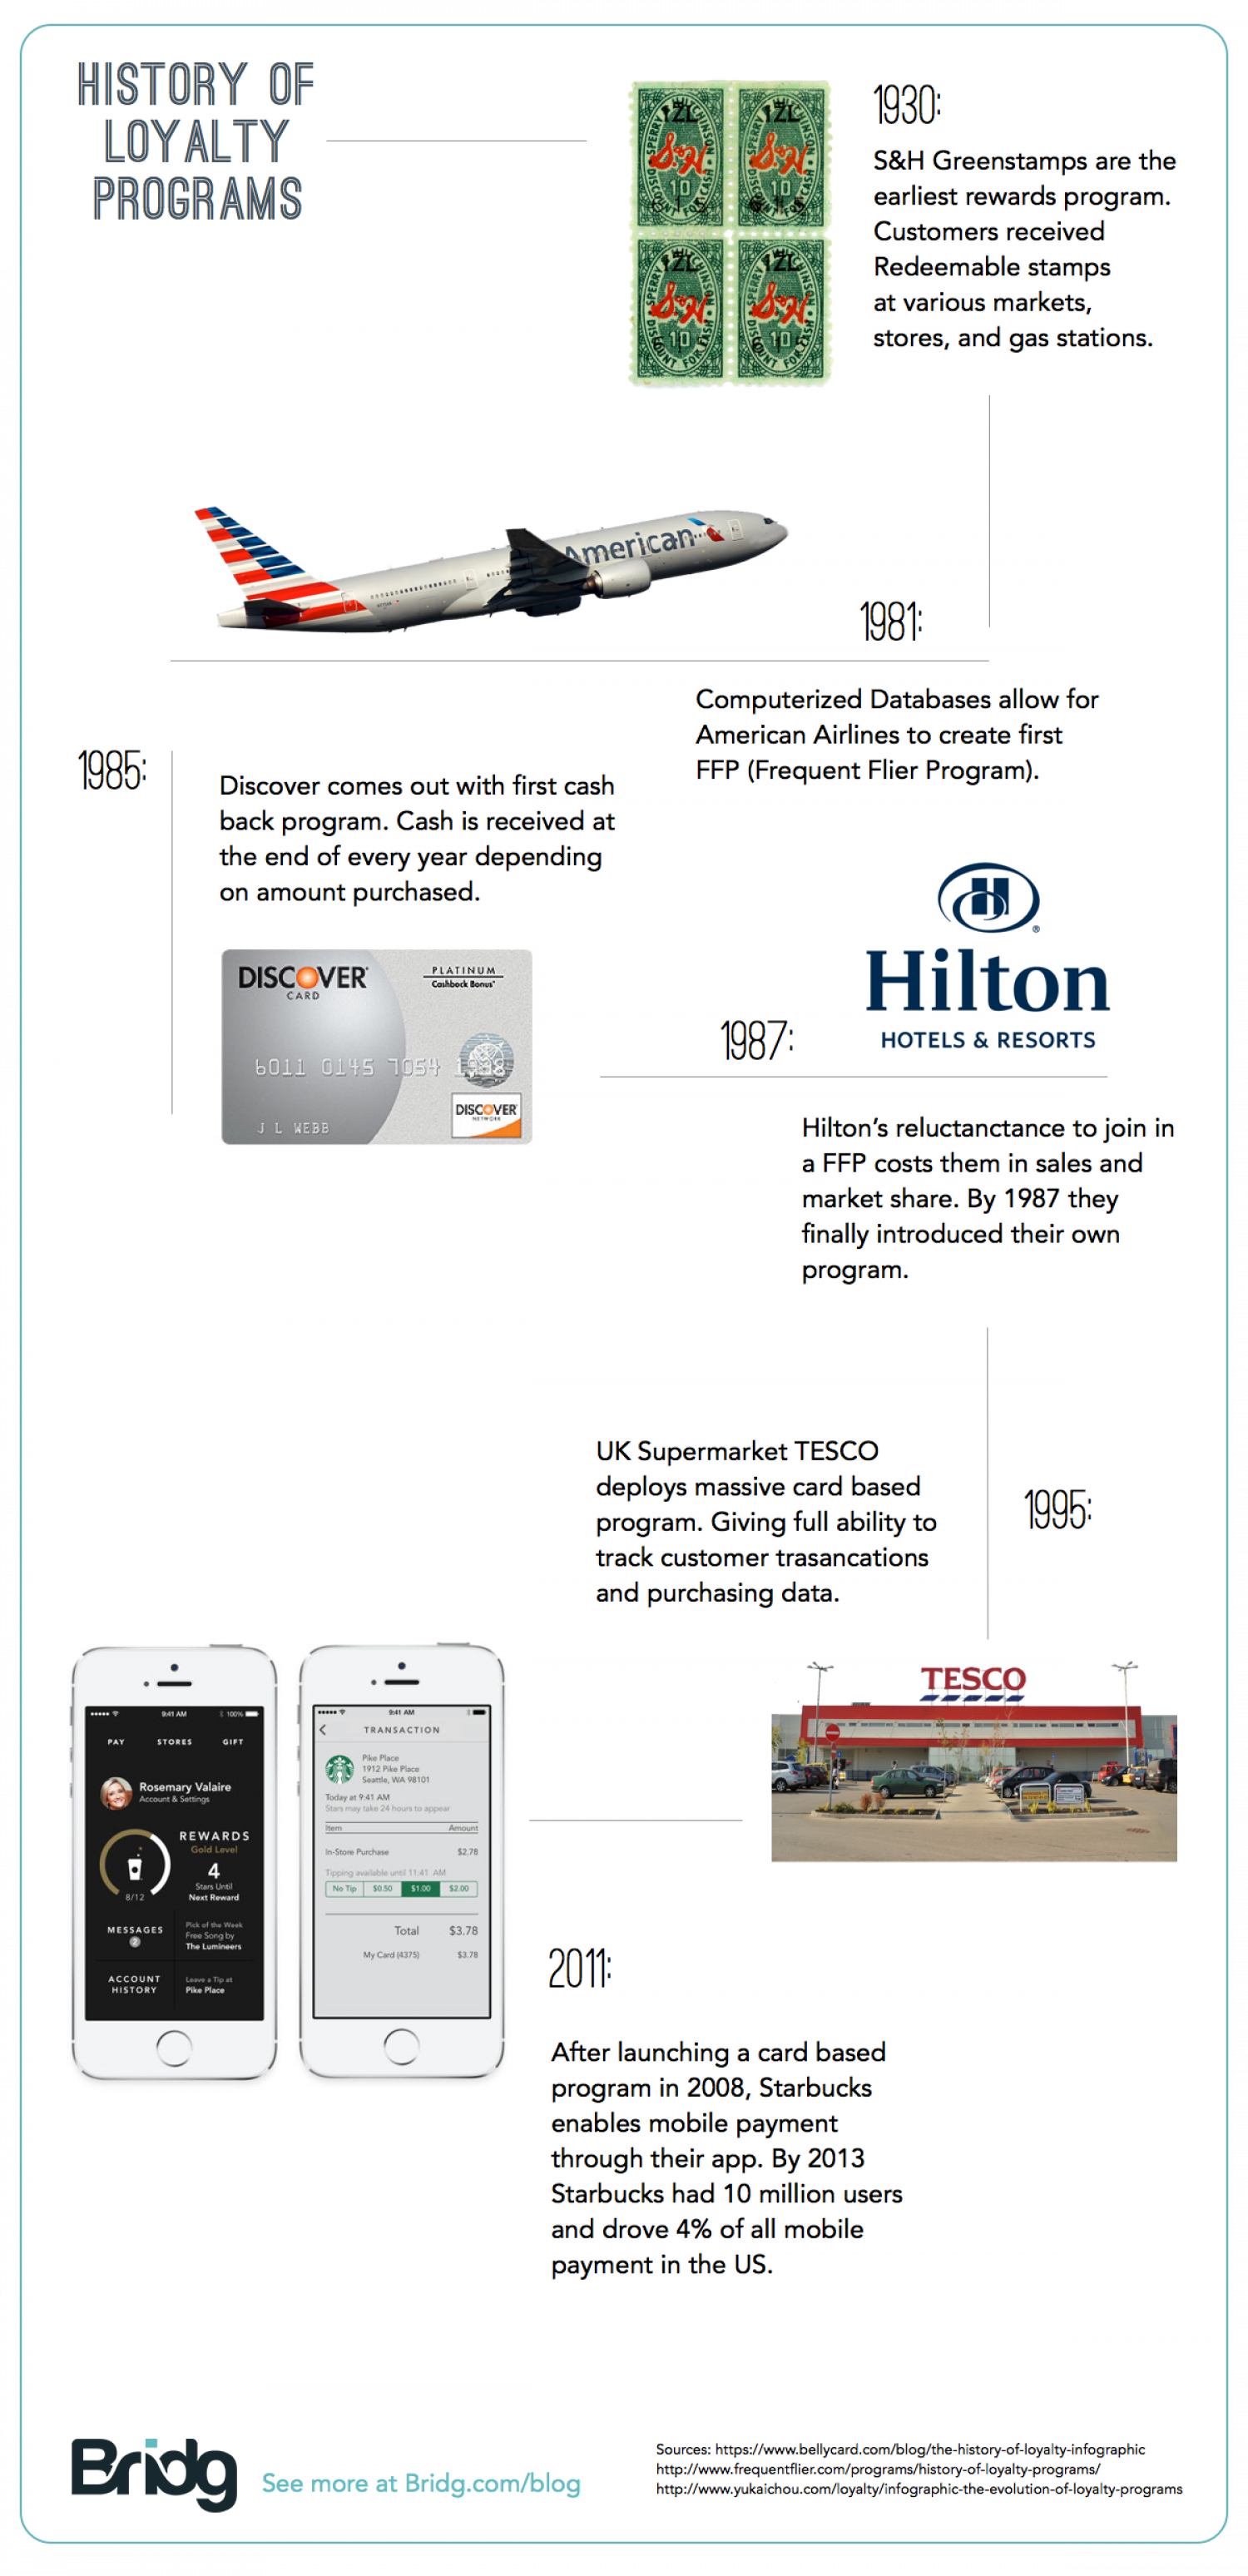 A Short History of Loyalty Programs Infographic